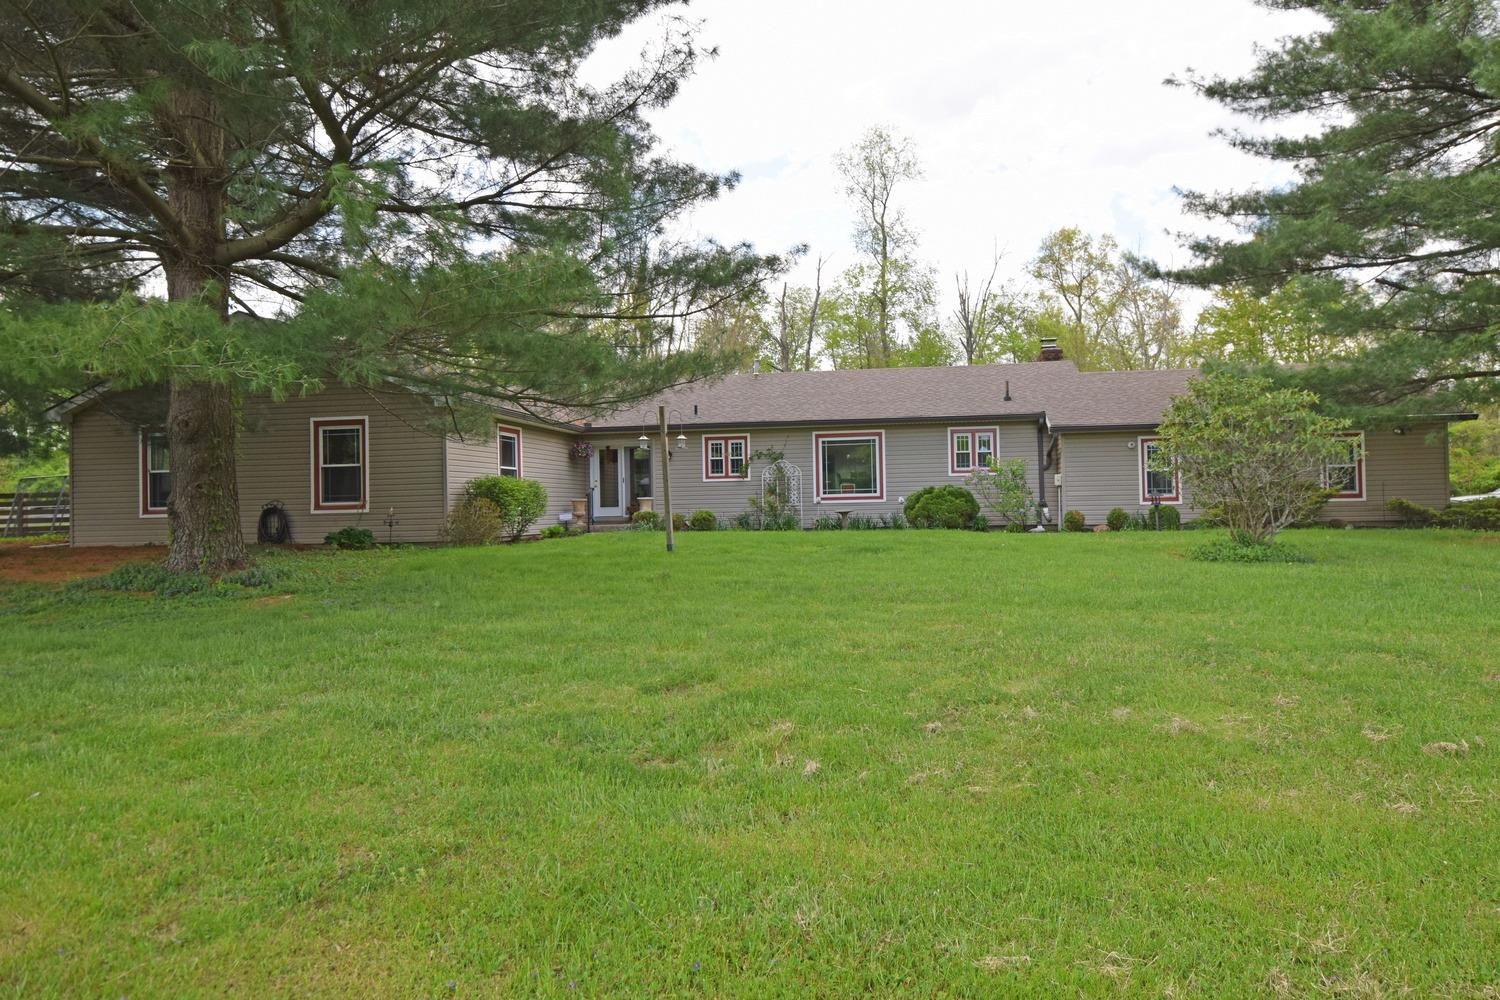 1678 Apgar Rd Stonelick Twp OH